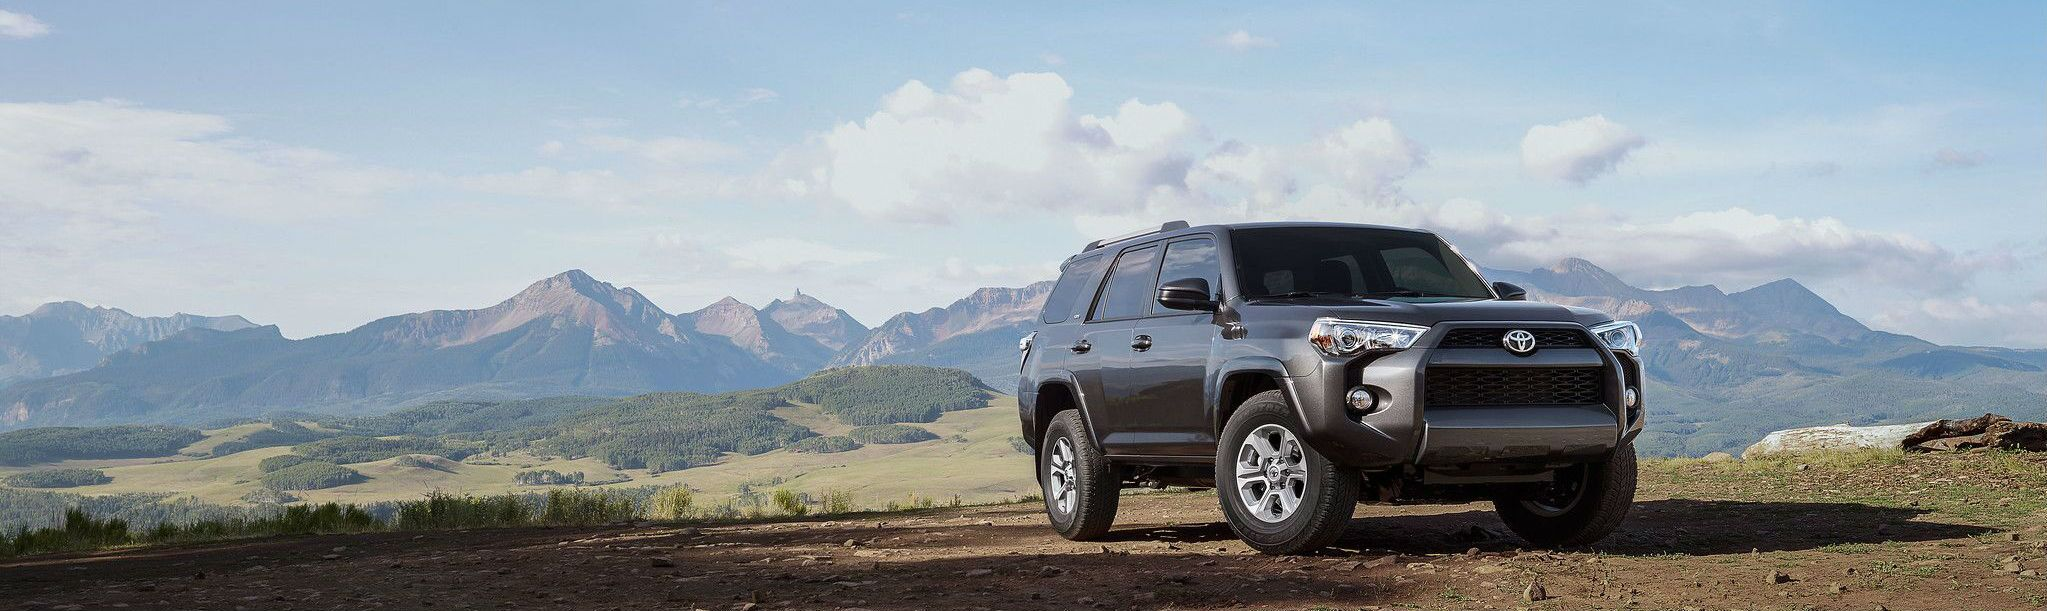 2019 Toyota 4Runner | Epping, NH